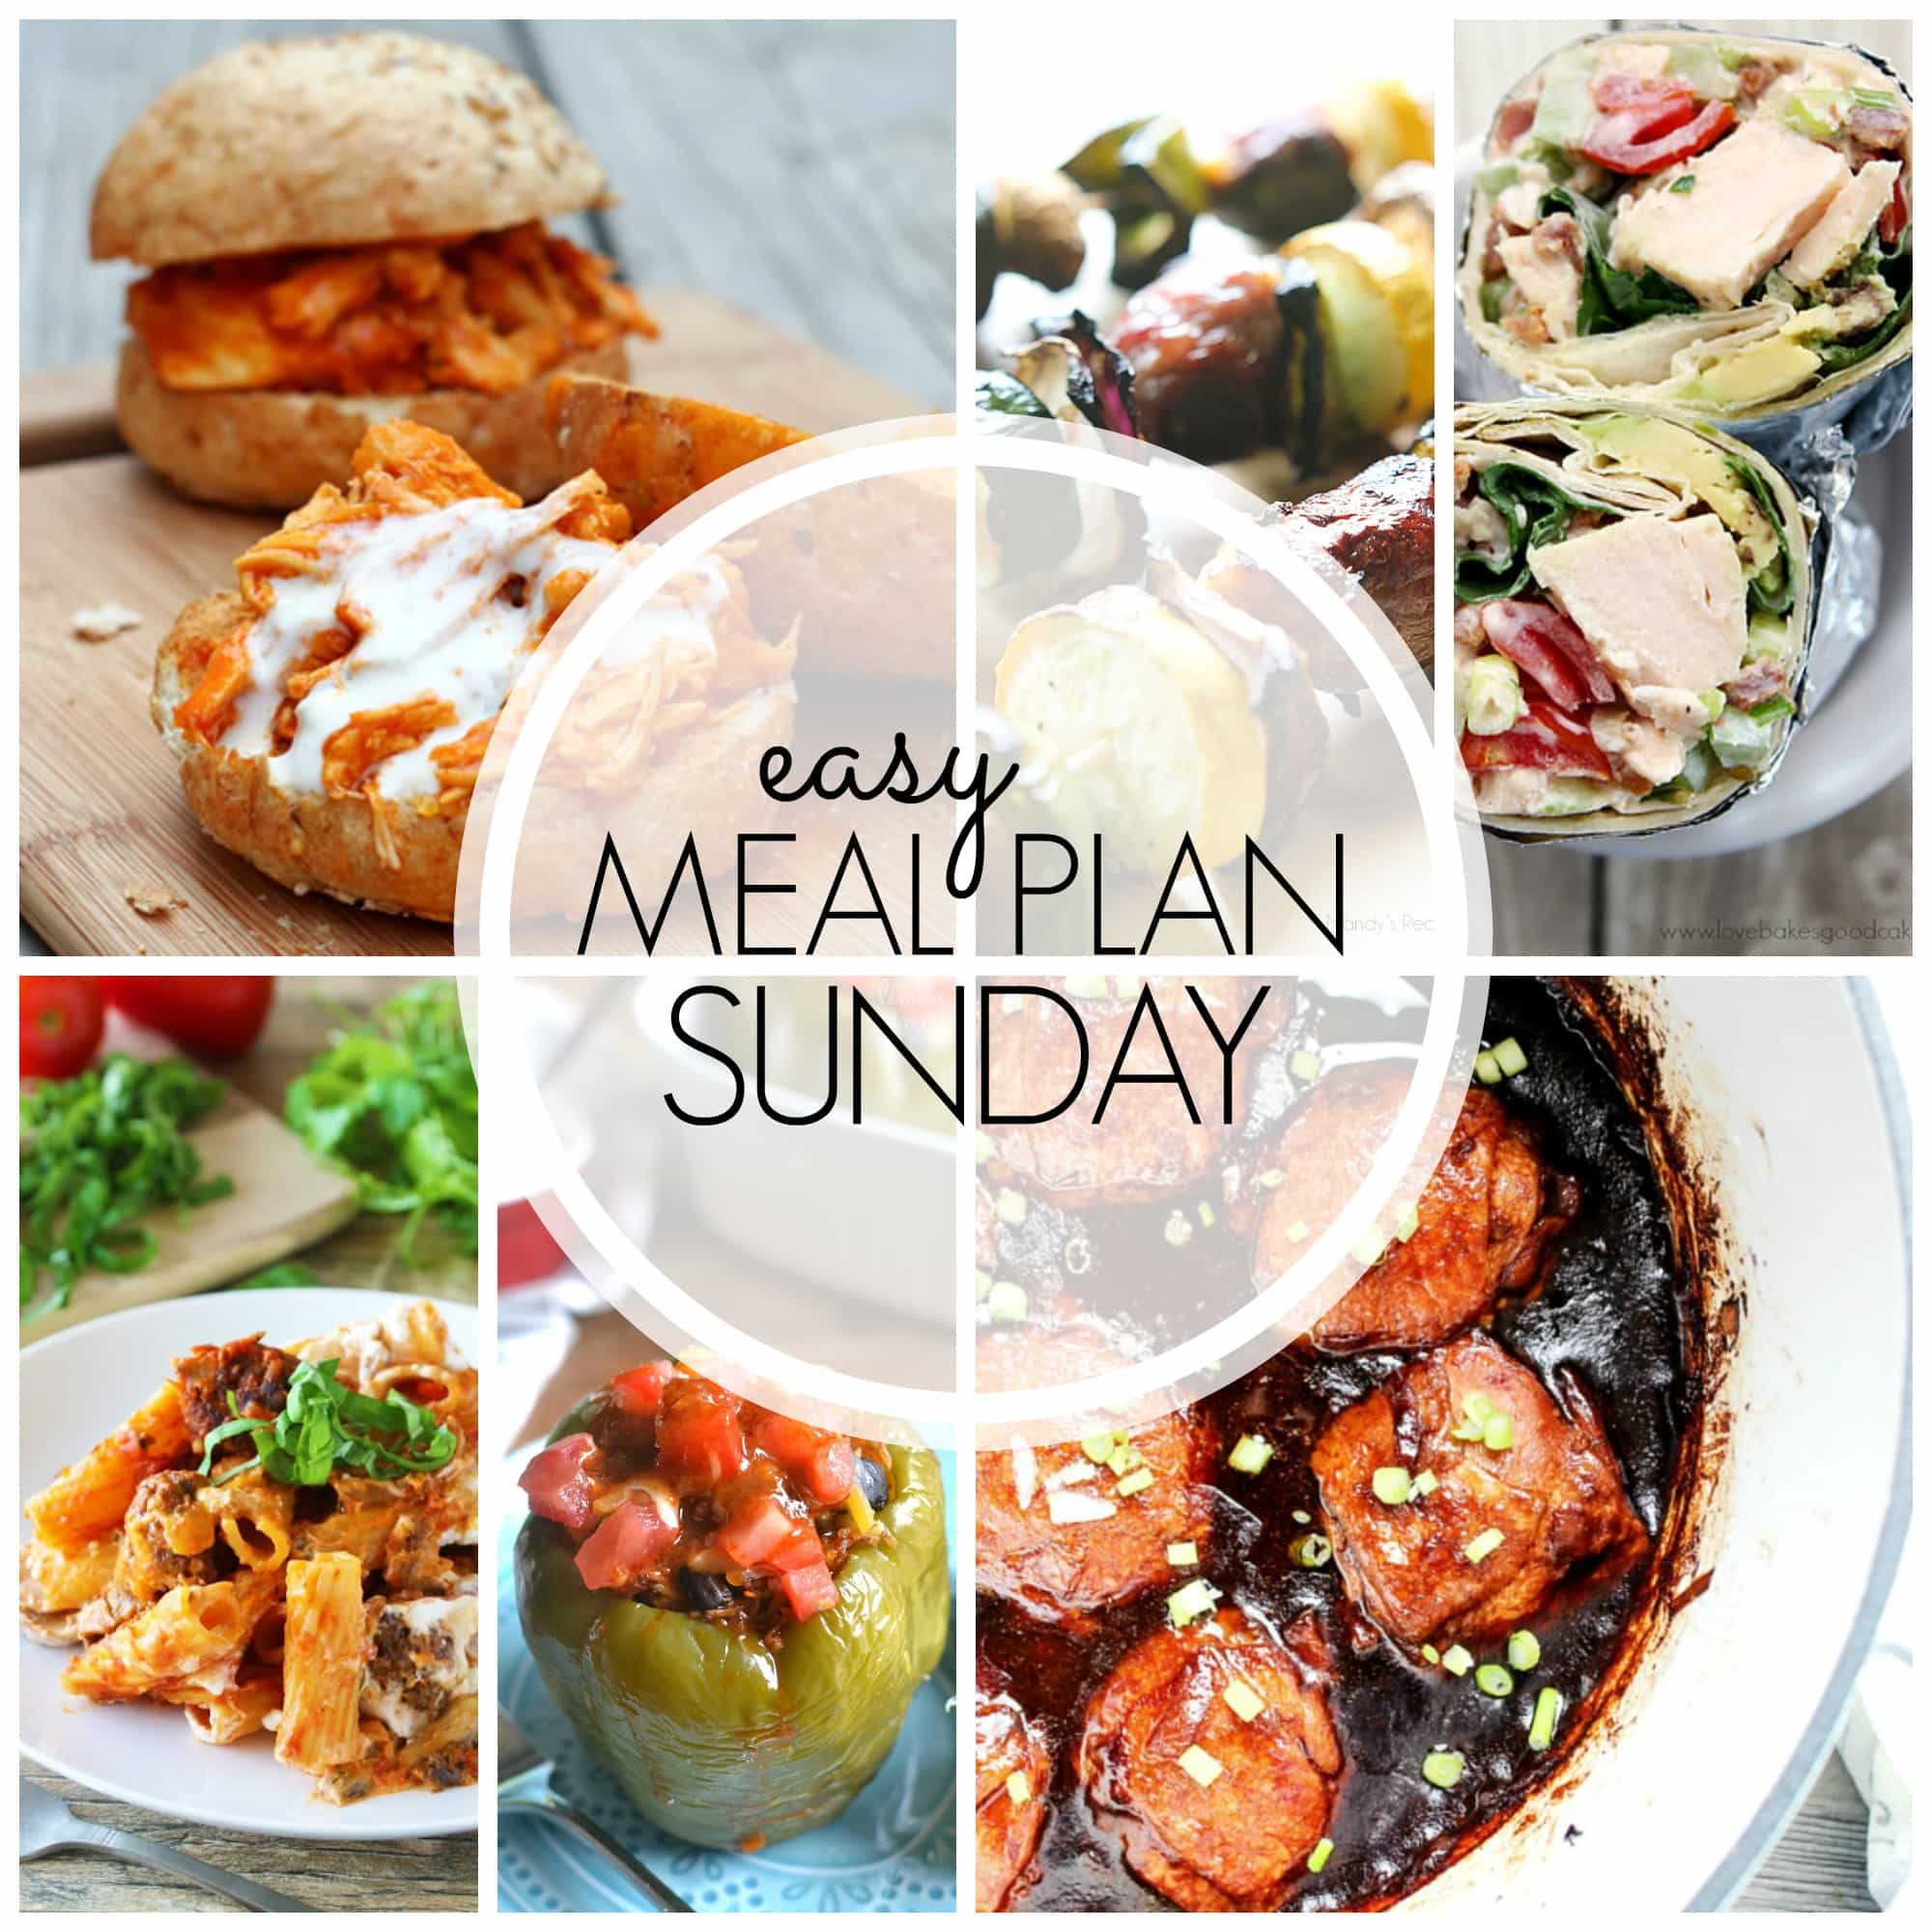 Leave the meal planning to us! 6 dinners, 1 breakfast, and 2 desserts for all your weekly meal plan needs.